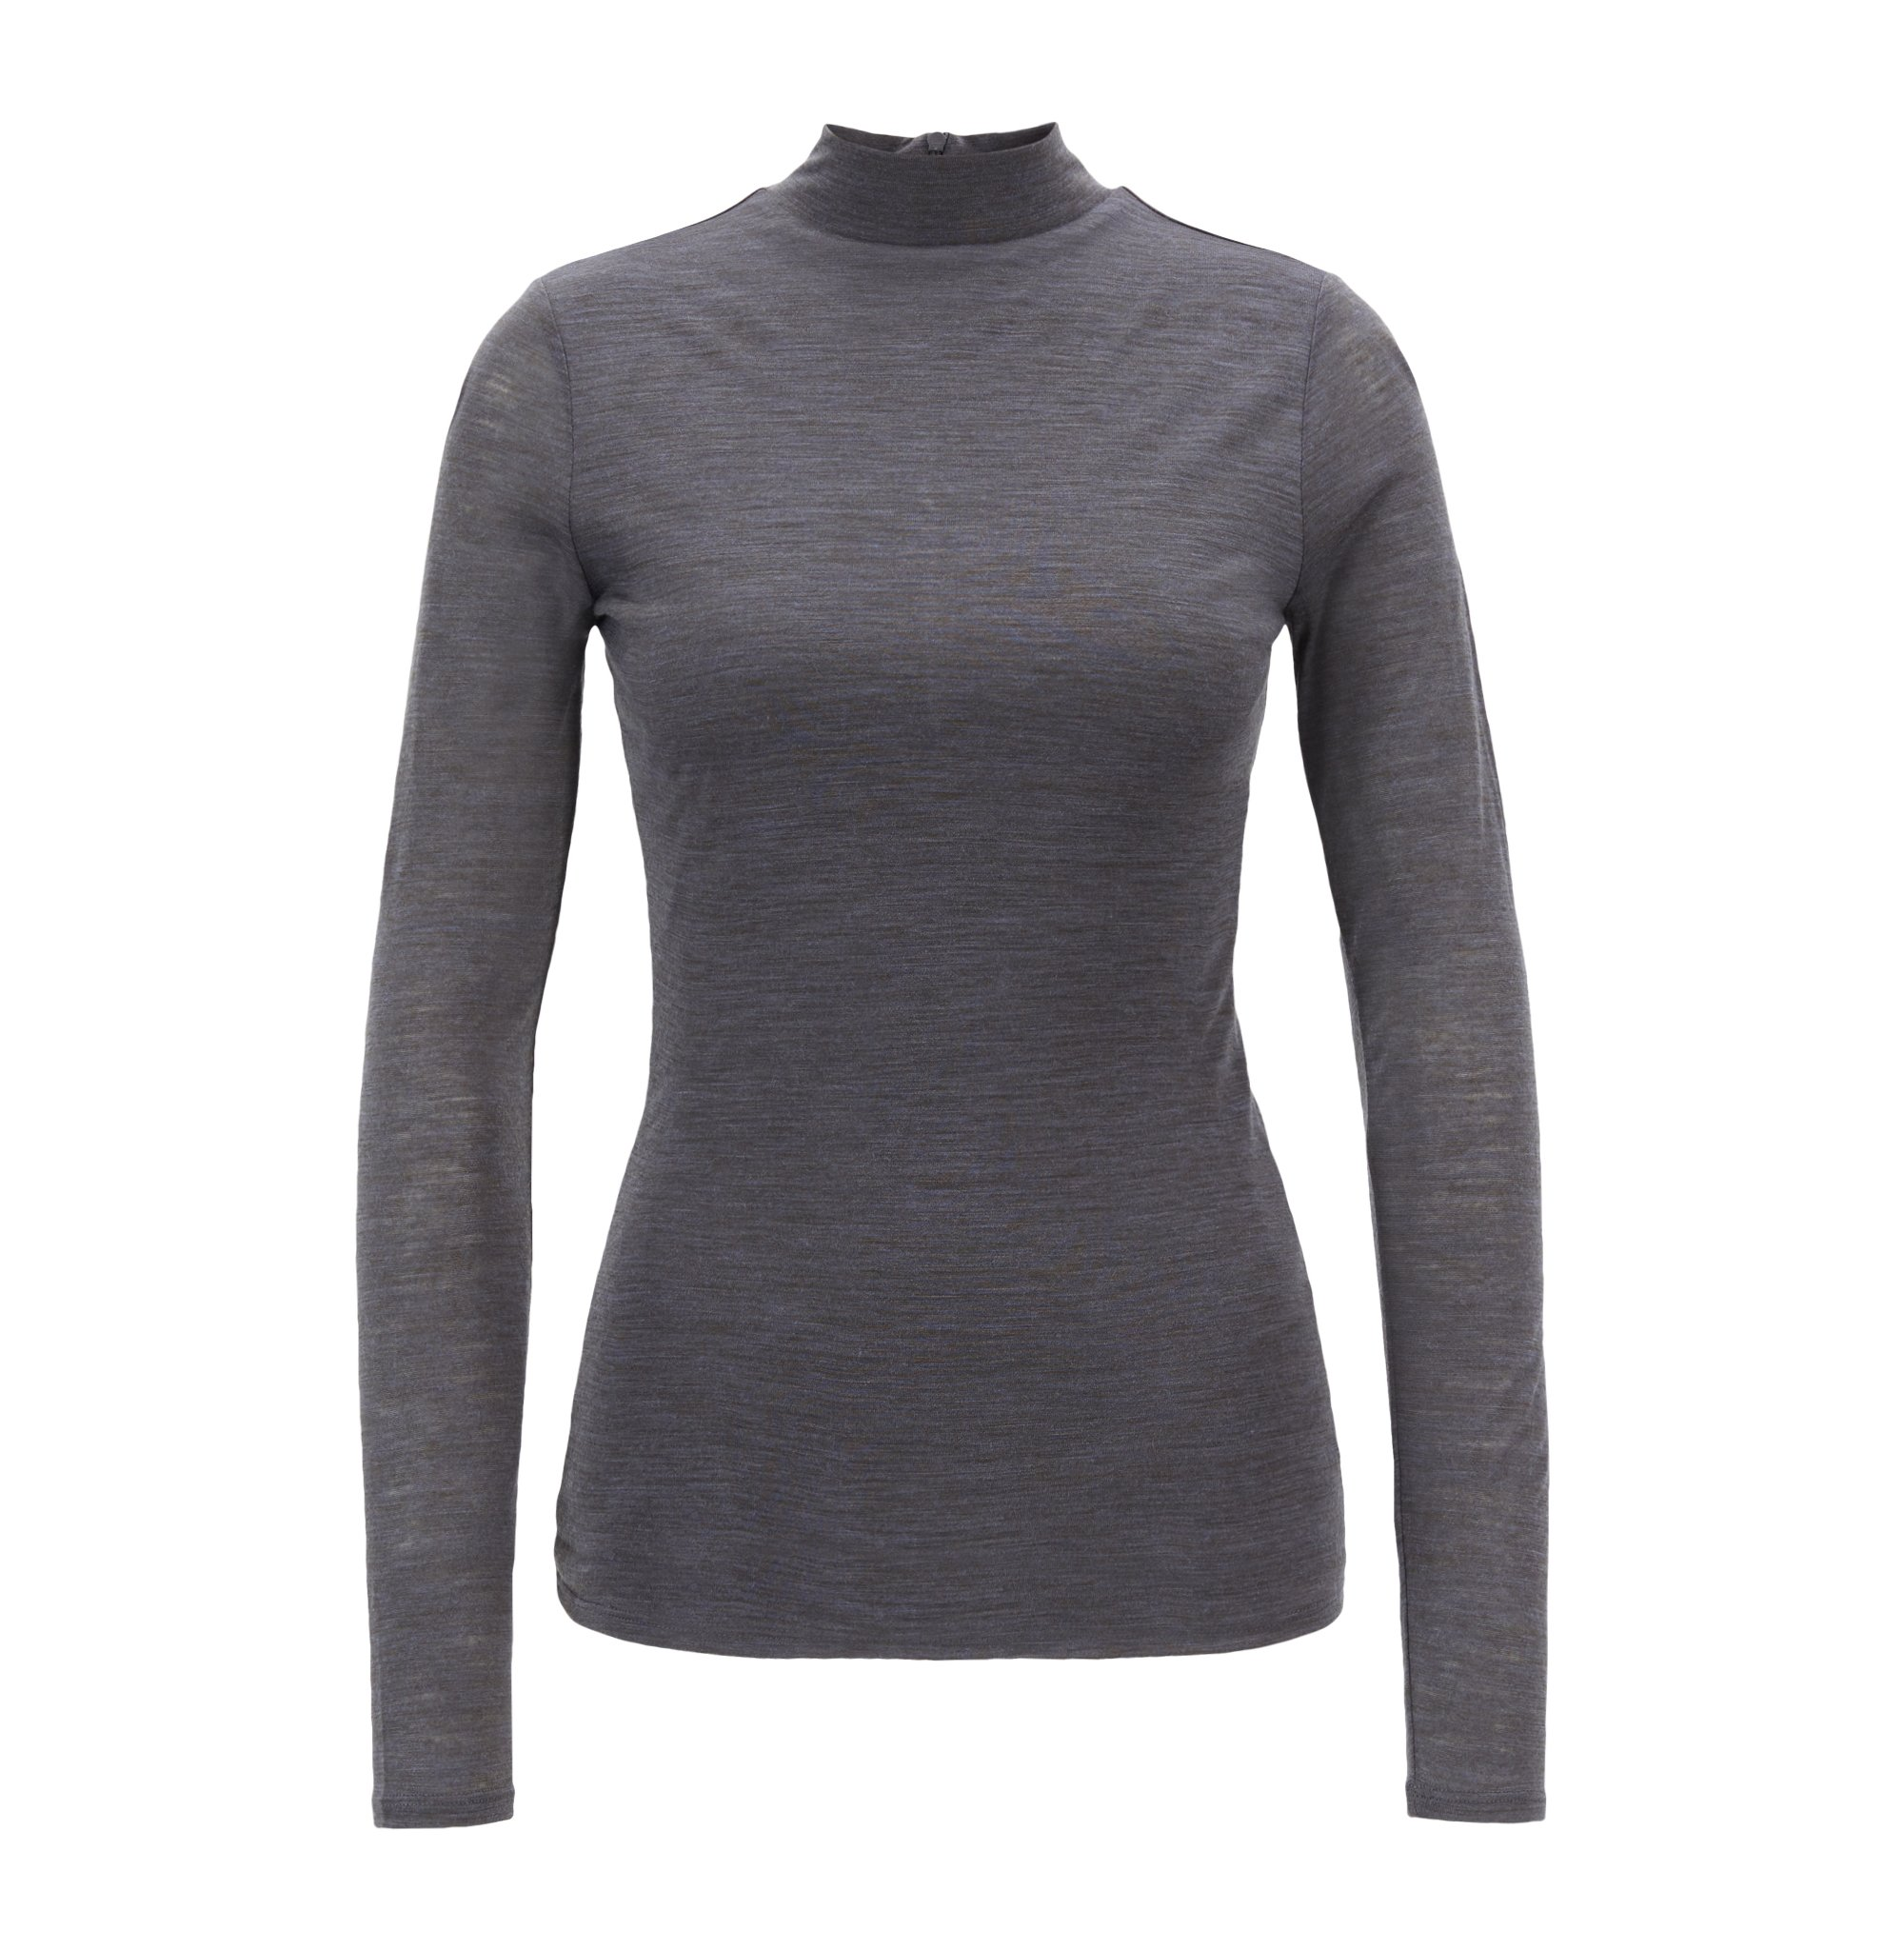 Turtleneck top in lightweight fabric with lined body, Anthracite